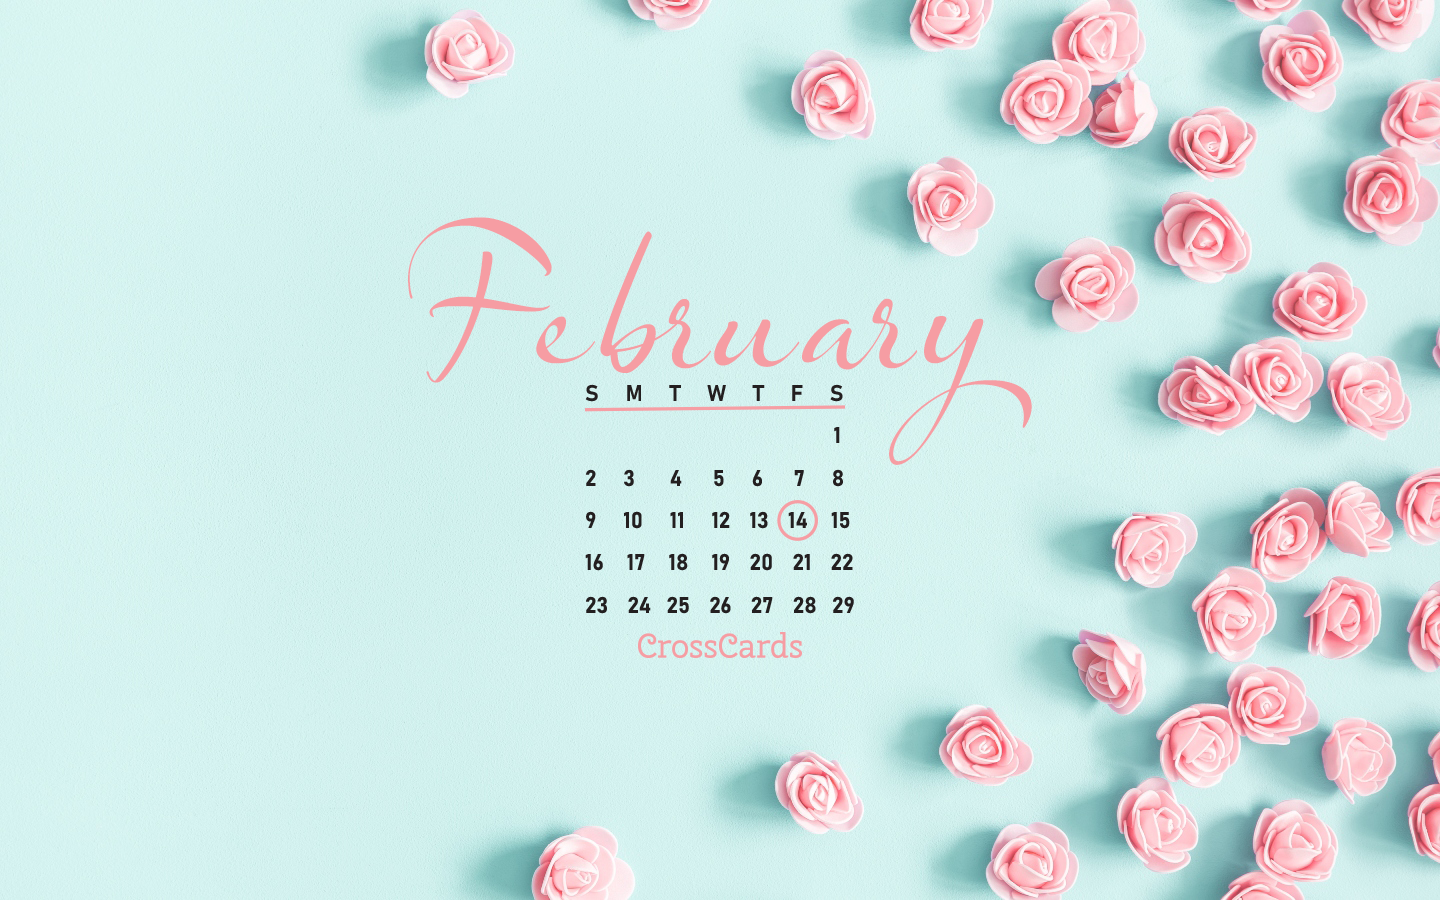 Free Computer wallpaper – February Picture designs